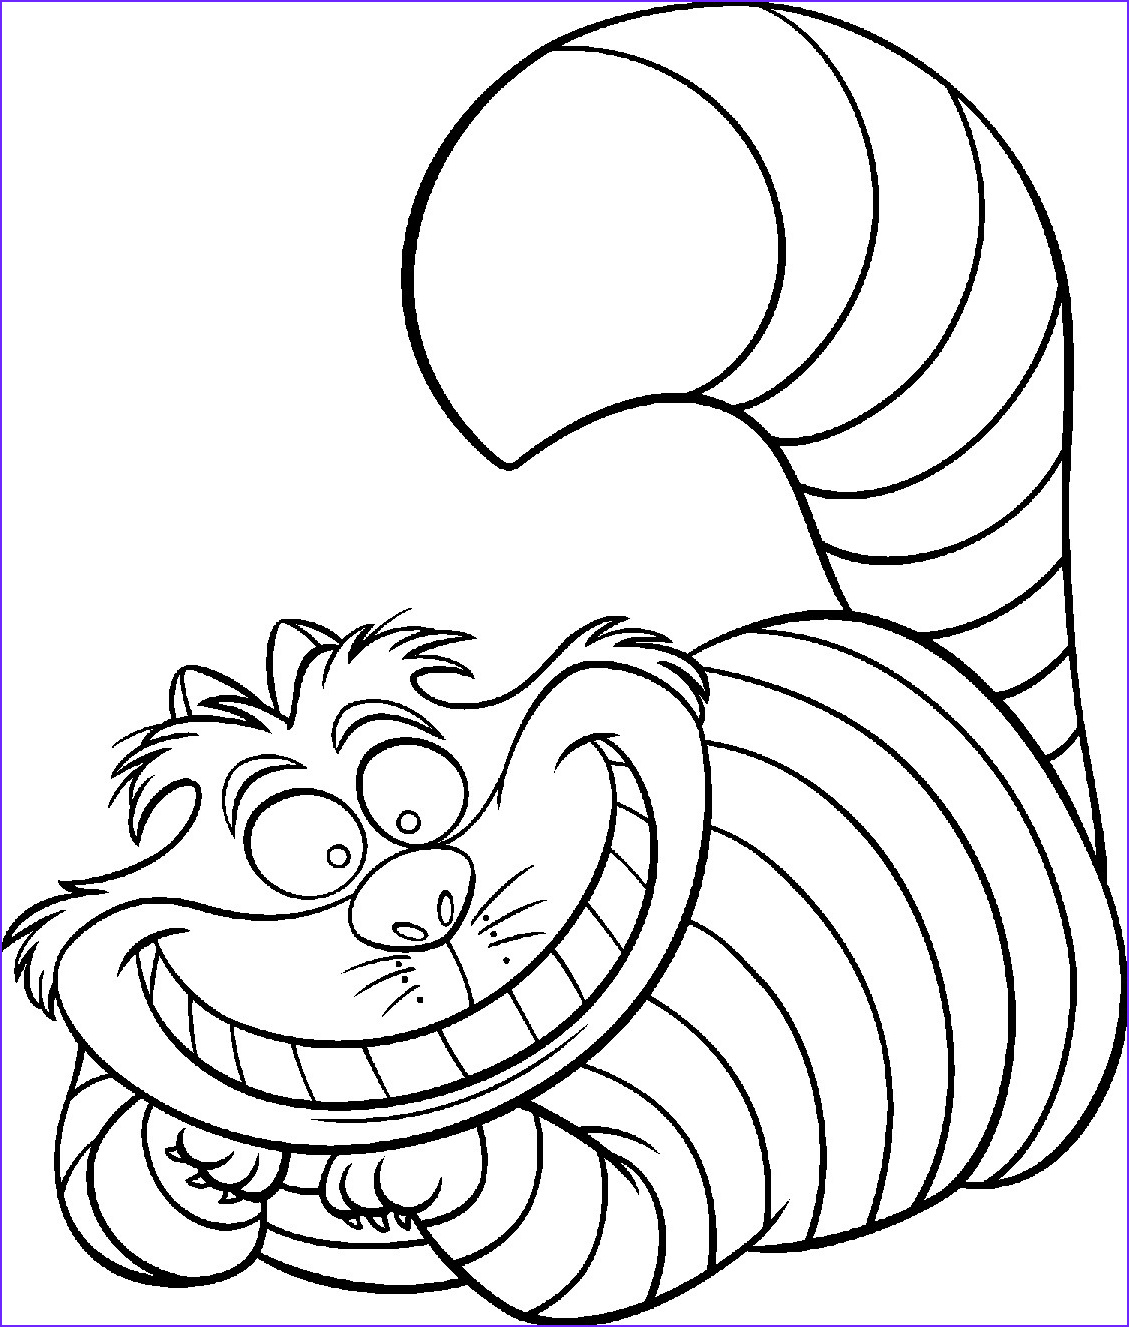 Coloring Page Children Best Of Photos Disney Coloring Pages Best Coloring Pages for Kids